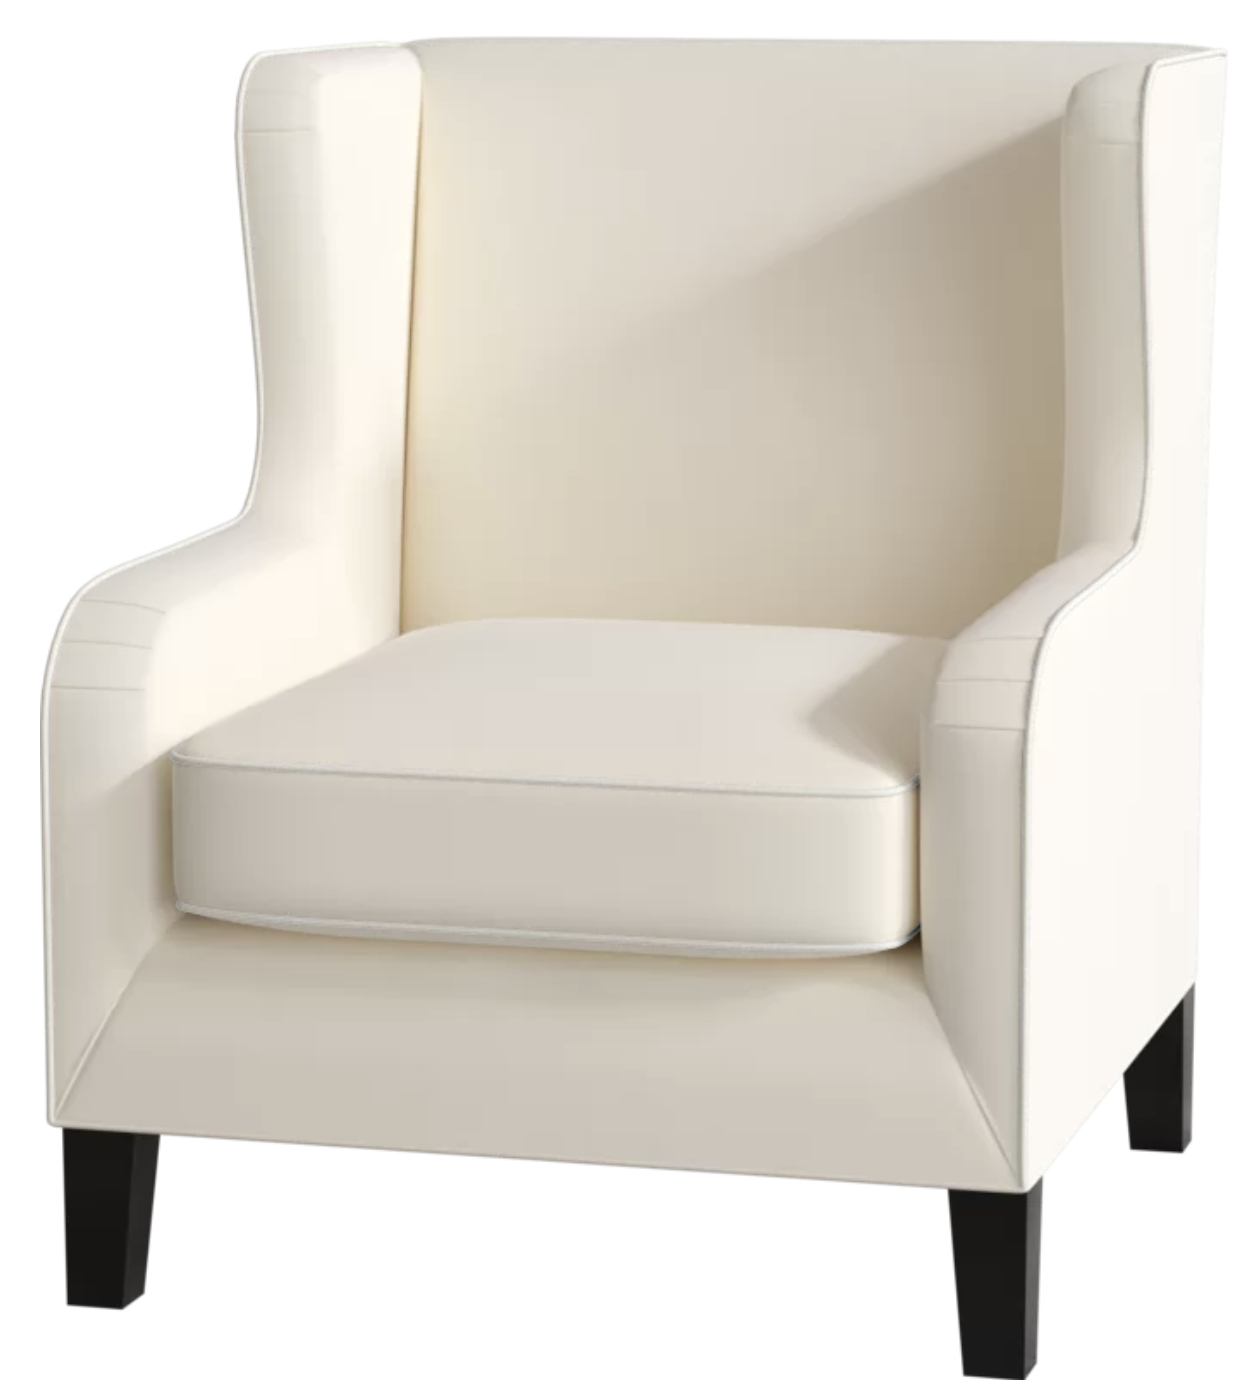 Top 7 Beige Wingback Chairs For Elegant Living Room – Cute Intended For Newest Andover Wingback Chairs (View 20 of 20)